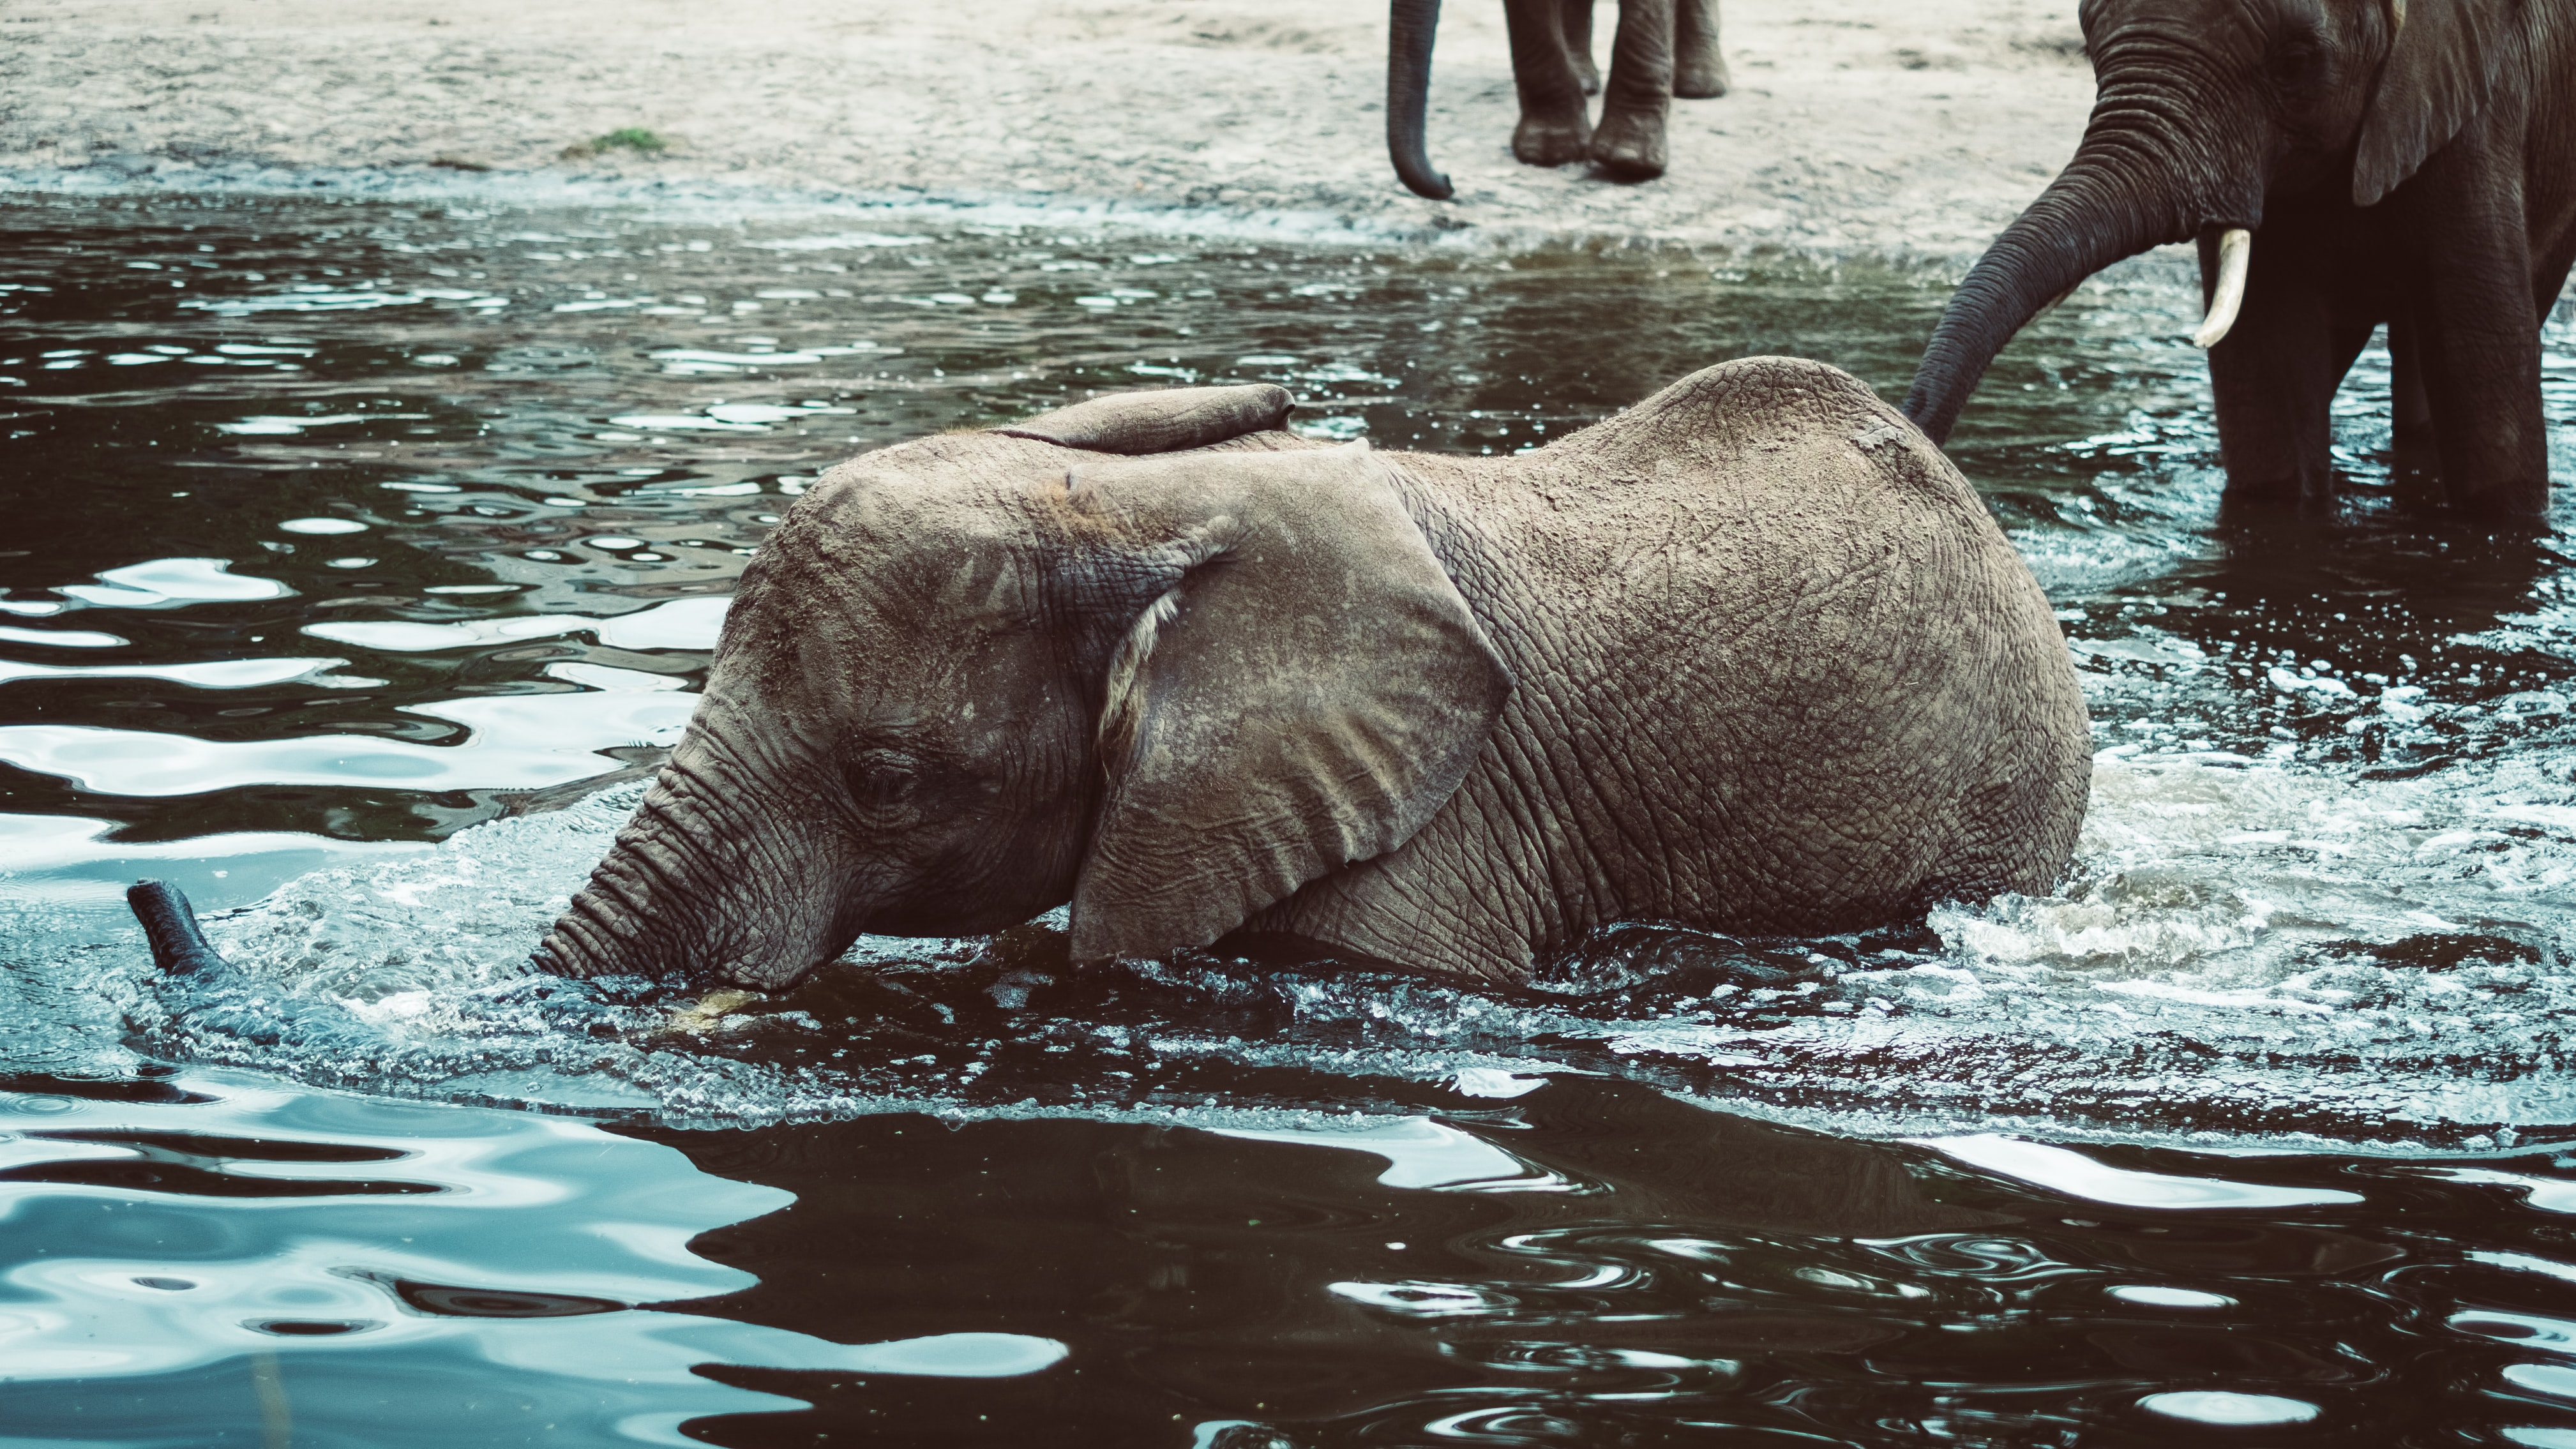 A playful baby elephant wading deep into the water with other elephants at the back